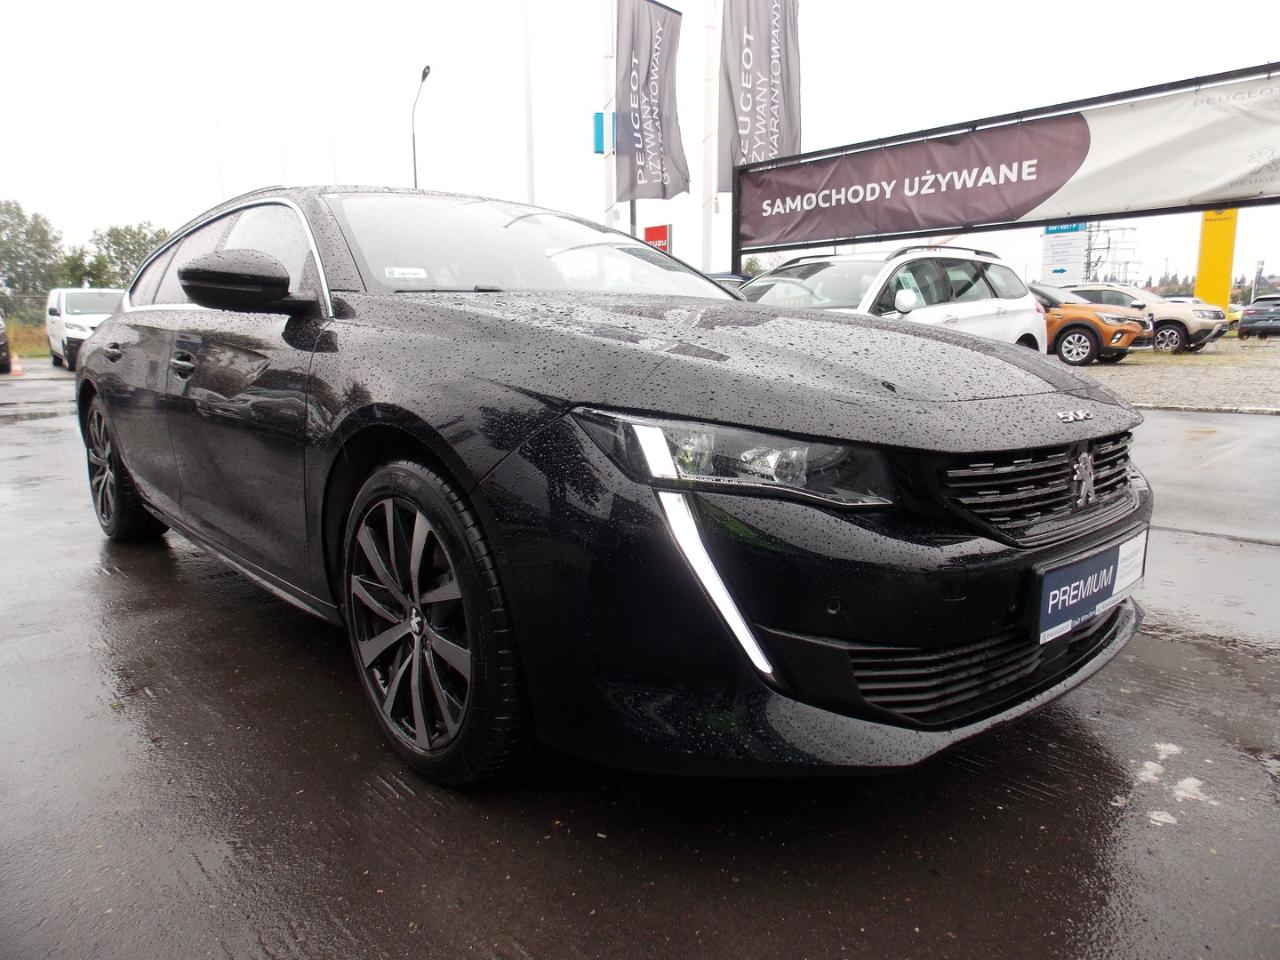 Peugeot 508 2.0 BlueHDi Allure S&S EAT8